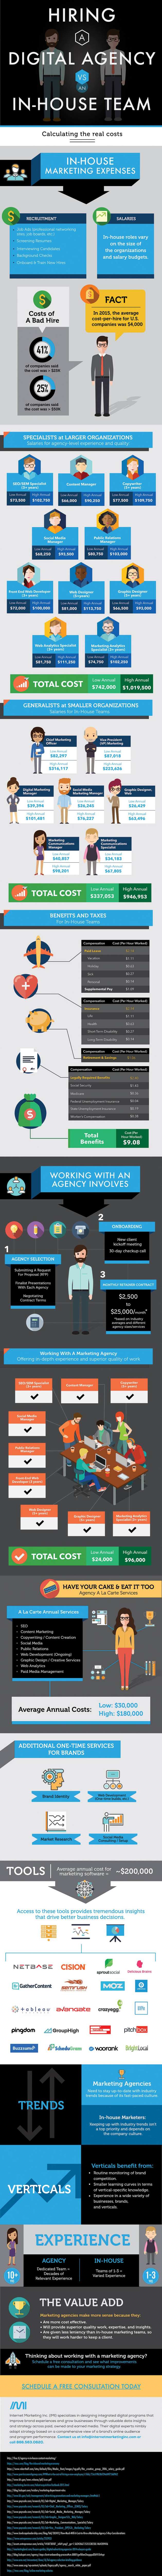 Hiring an Agency vs. an In-House Team: A Cost/Benefit Analysis [Infographic]